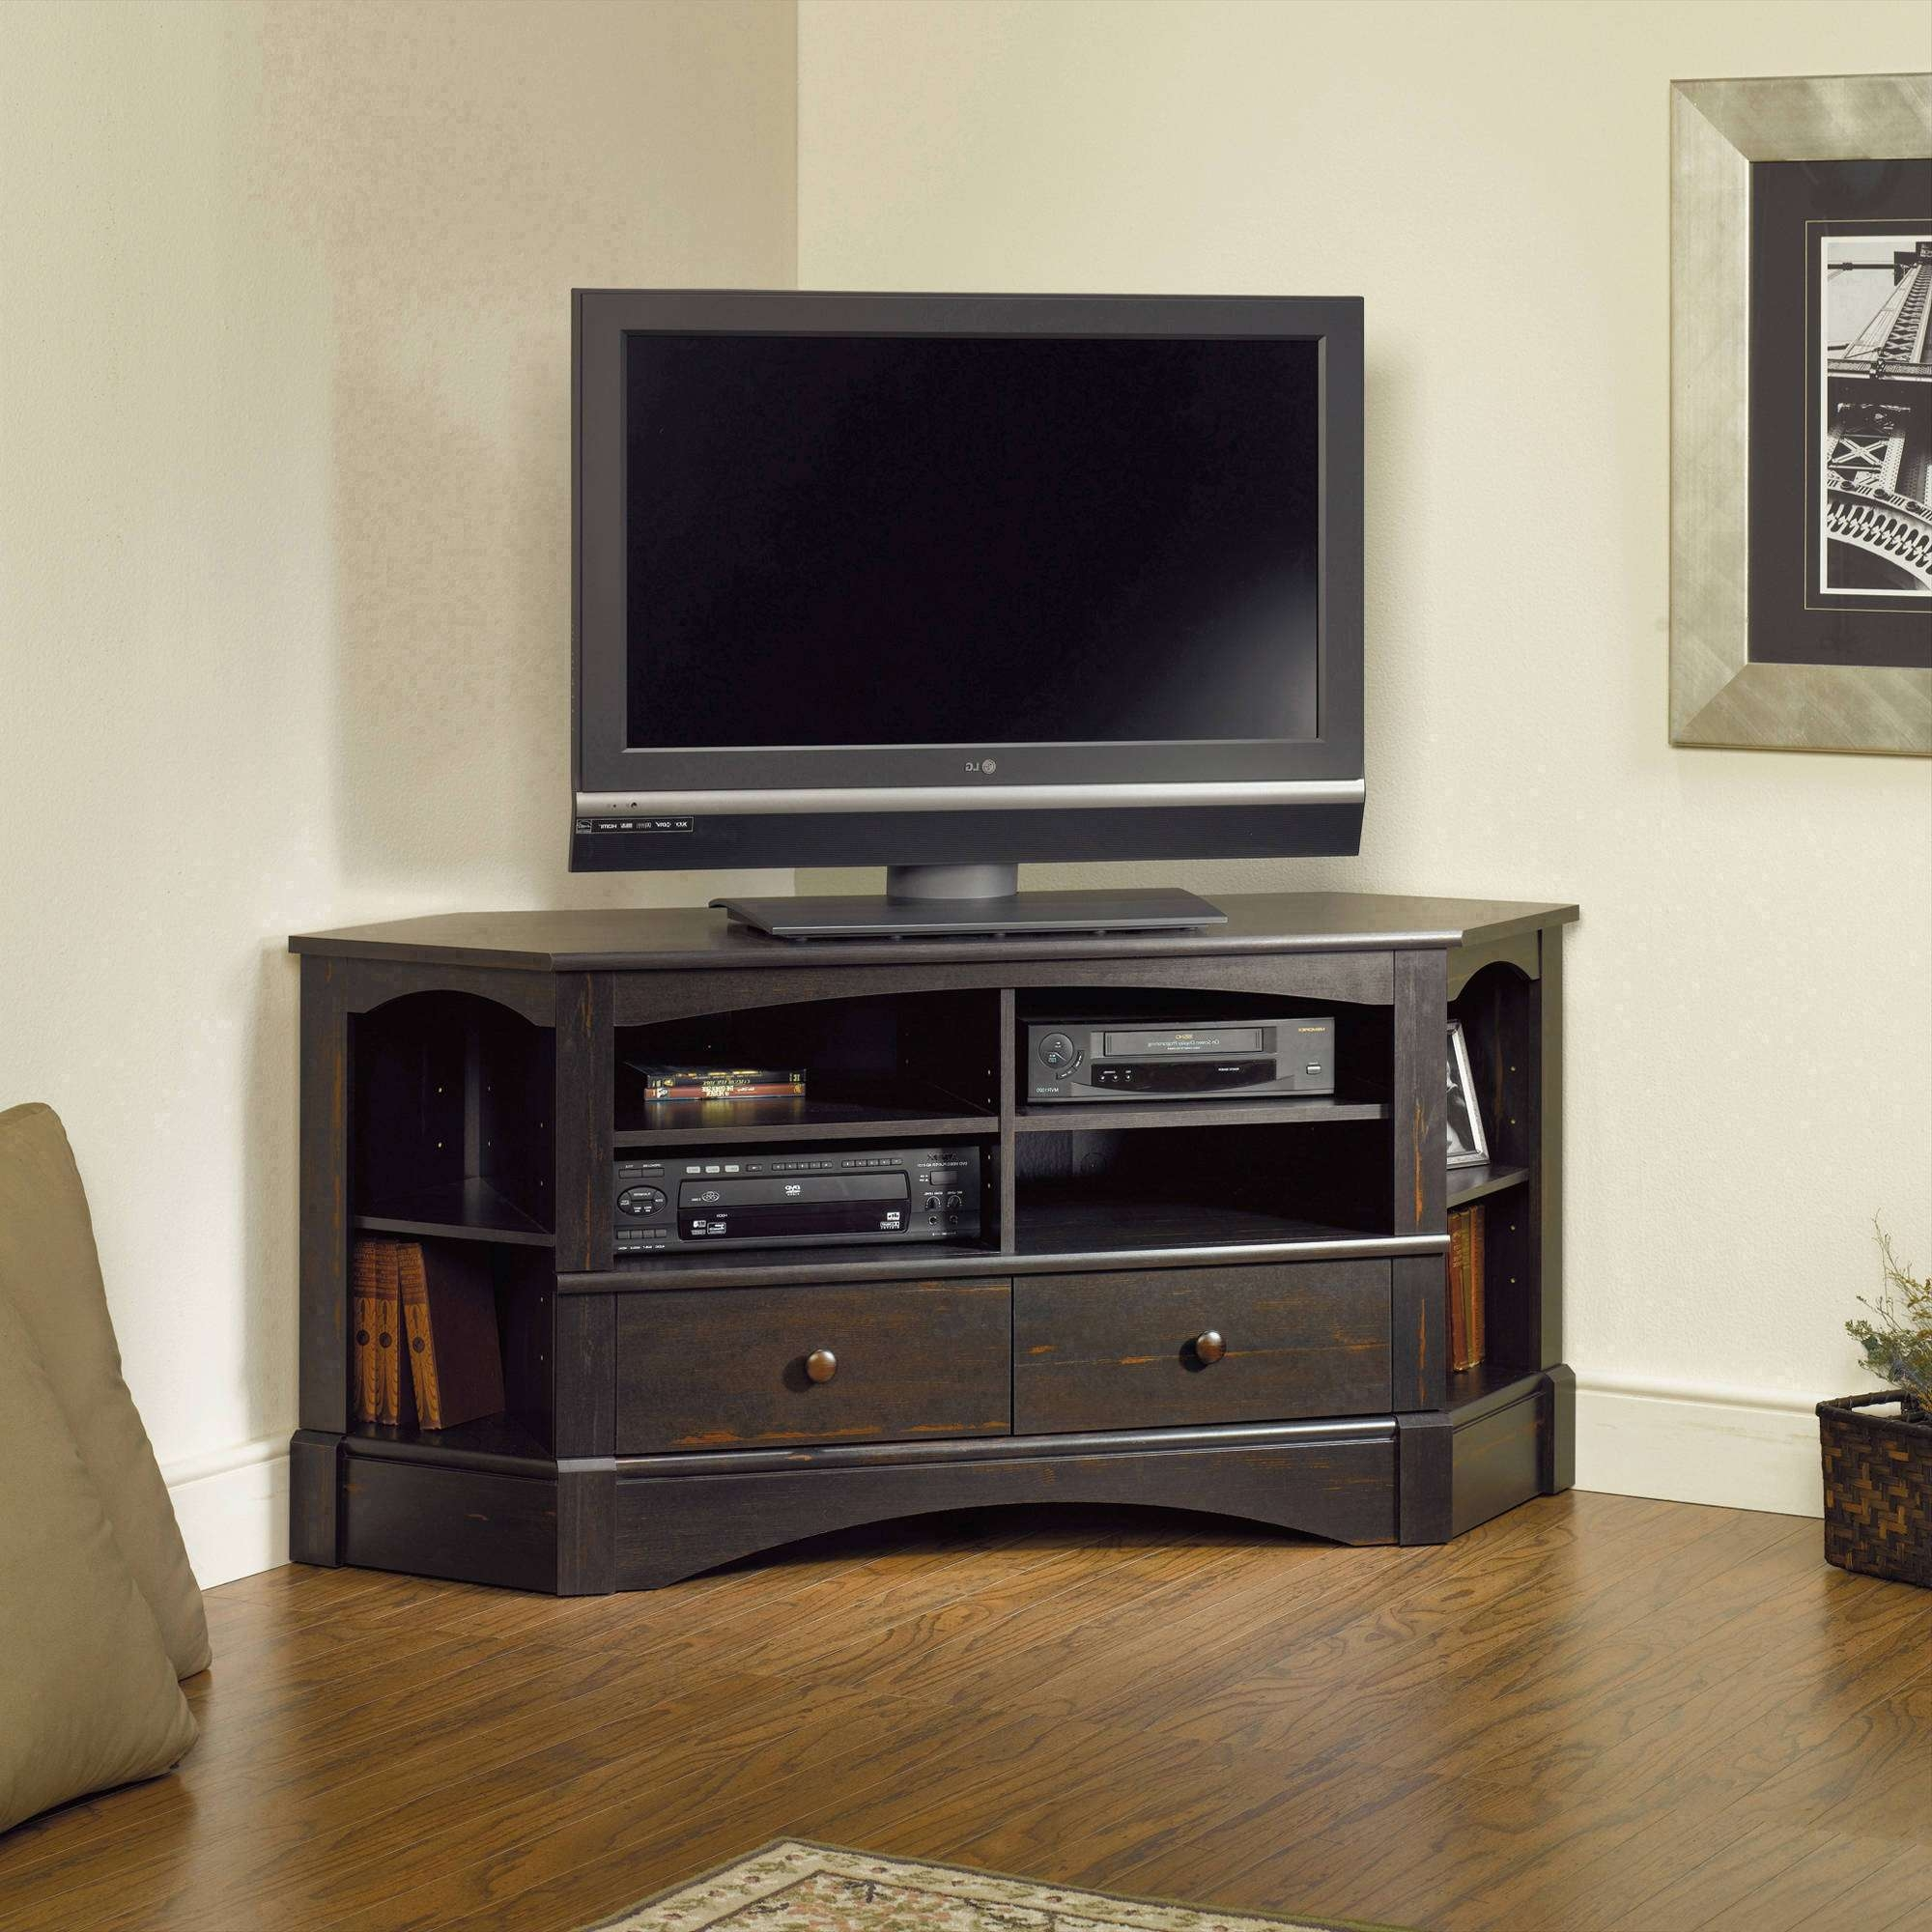 Sauder Harbor View Corner Entertainment Credenza For Tvs Up To 42 Throughout Tv Stands For Large Tvs (View 7 of 15)